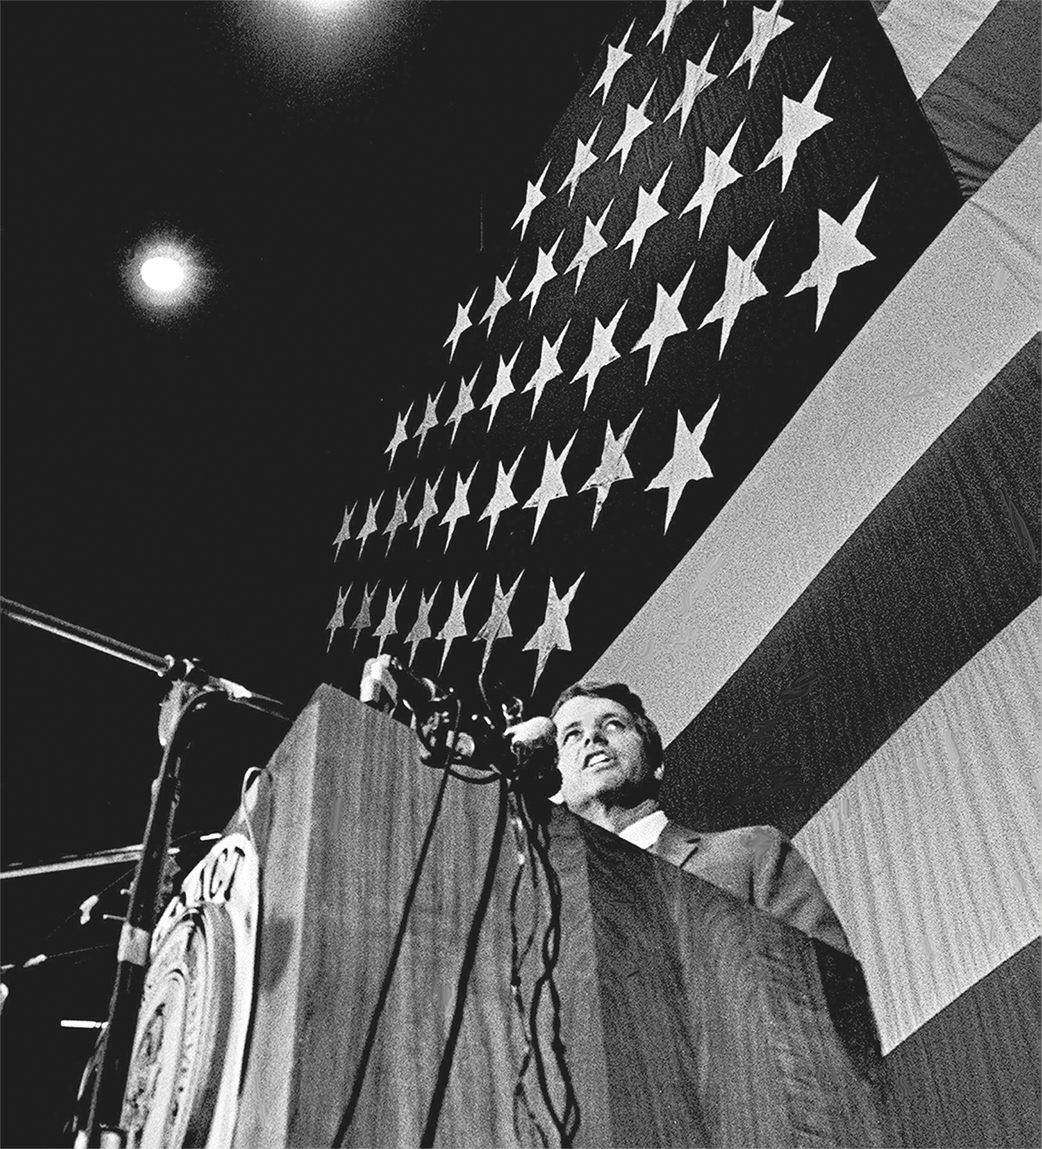 photo of Robert Kennedy at a podium